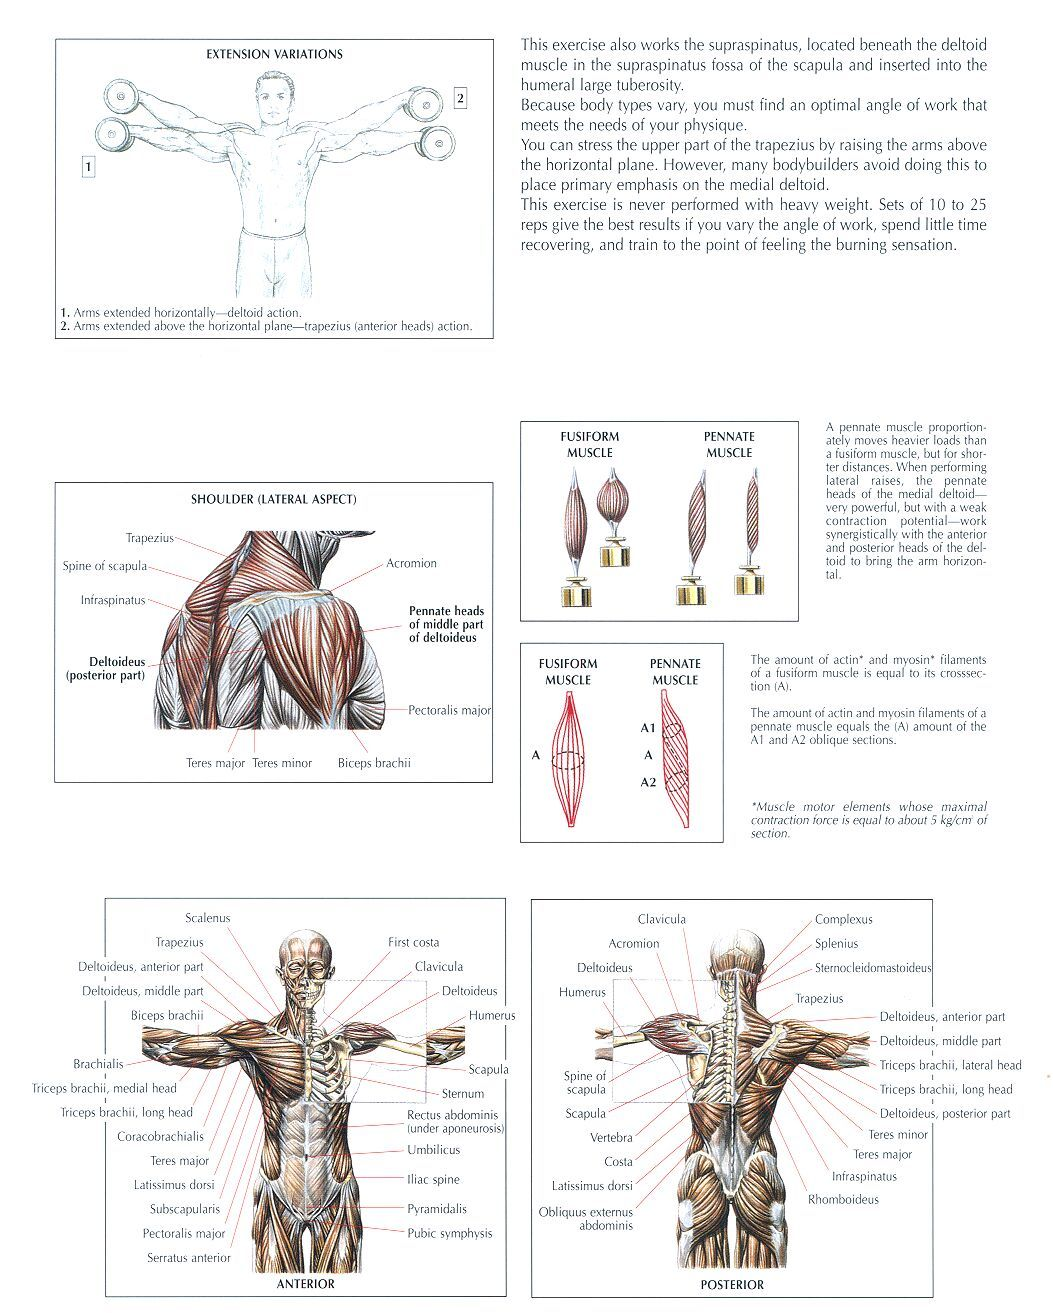 b0573a1561204 The anatomy of lifting (lots of pics) - Page 2 - Bodybuilding.com Forums